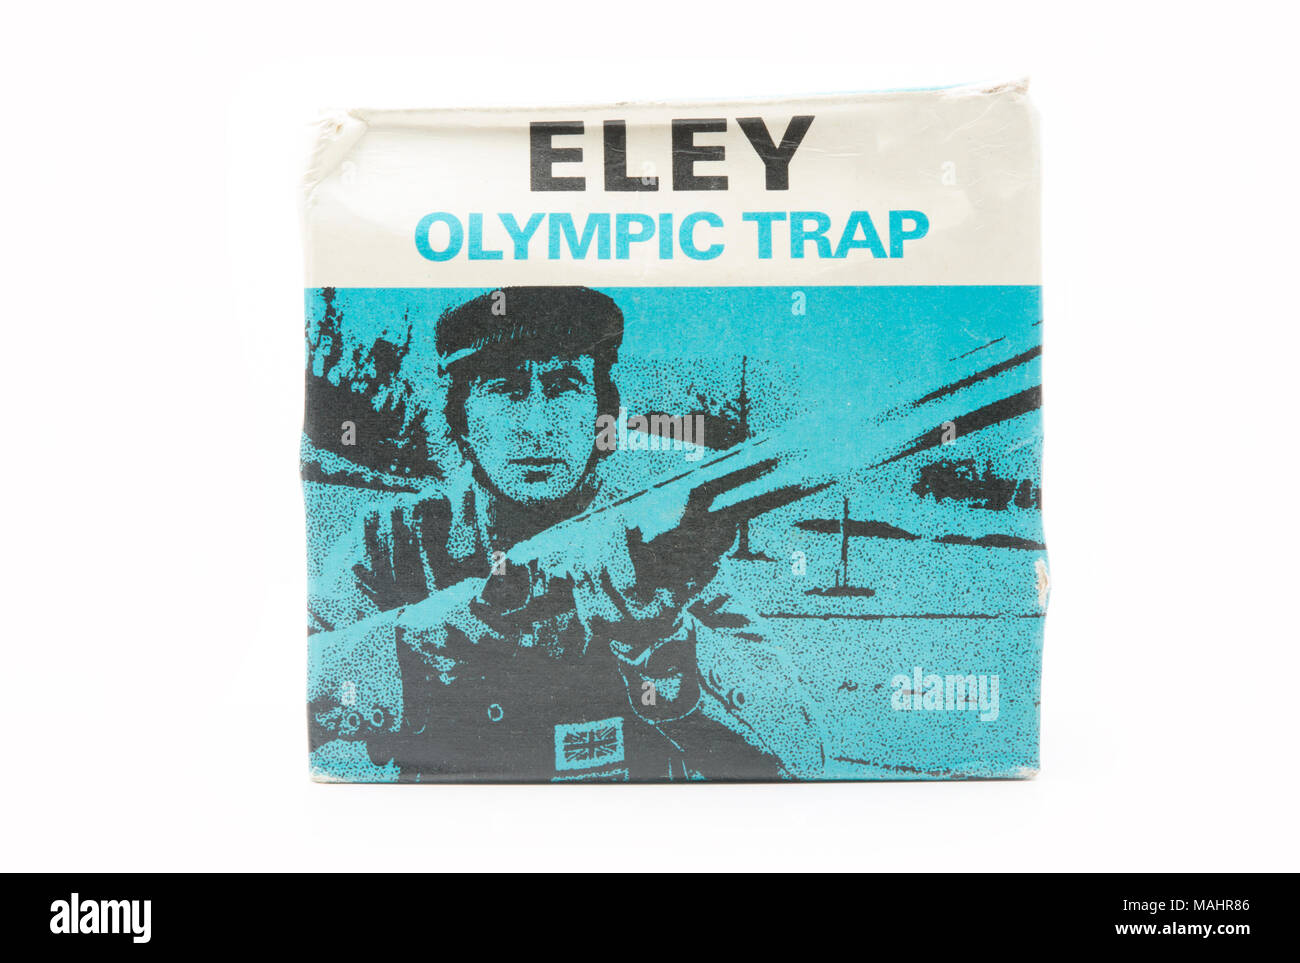 An old Eley Olympic Trap cartridge box featuring Sir Jackie Stewart OBE. UK - Stock Image